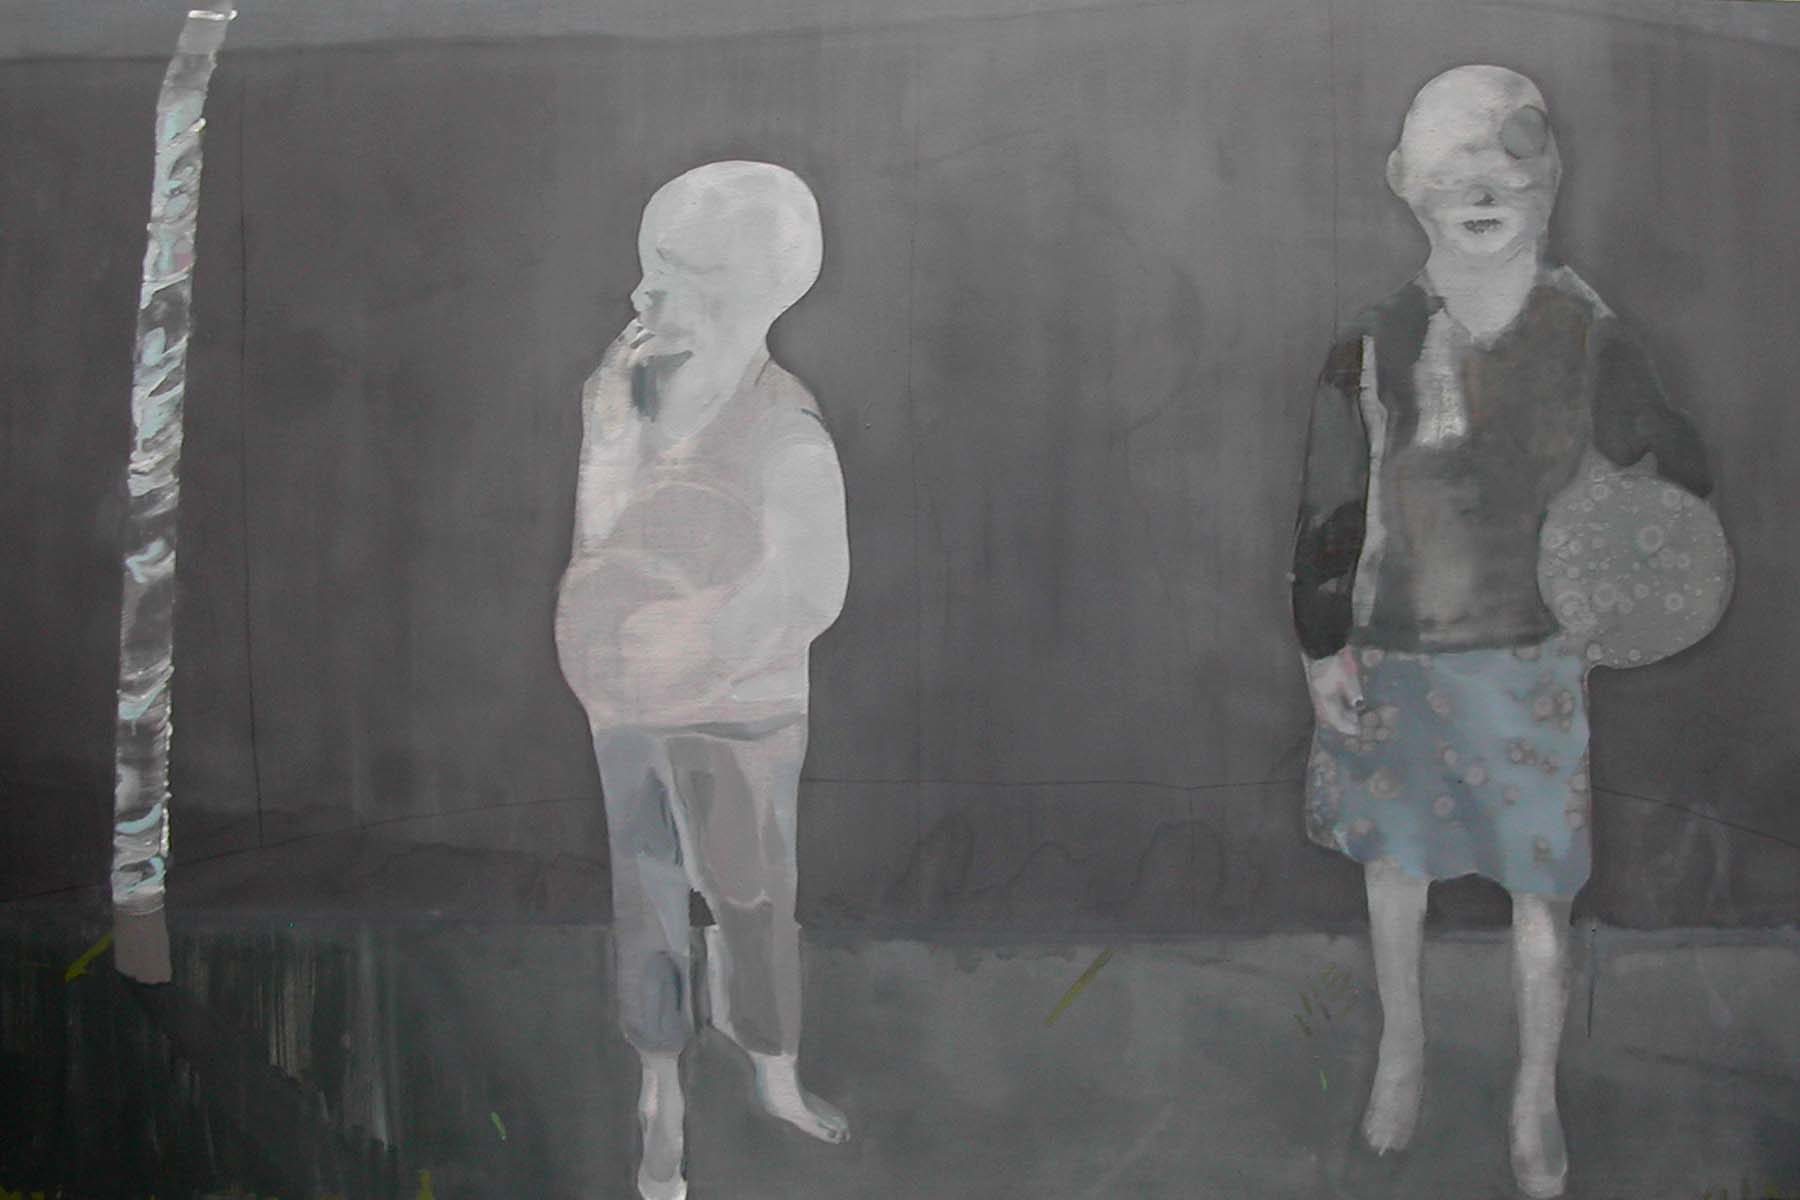 Nebojša Despotović, Illuminating Child, 2009, oil on canvas, 240 x 150 cm